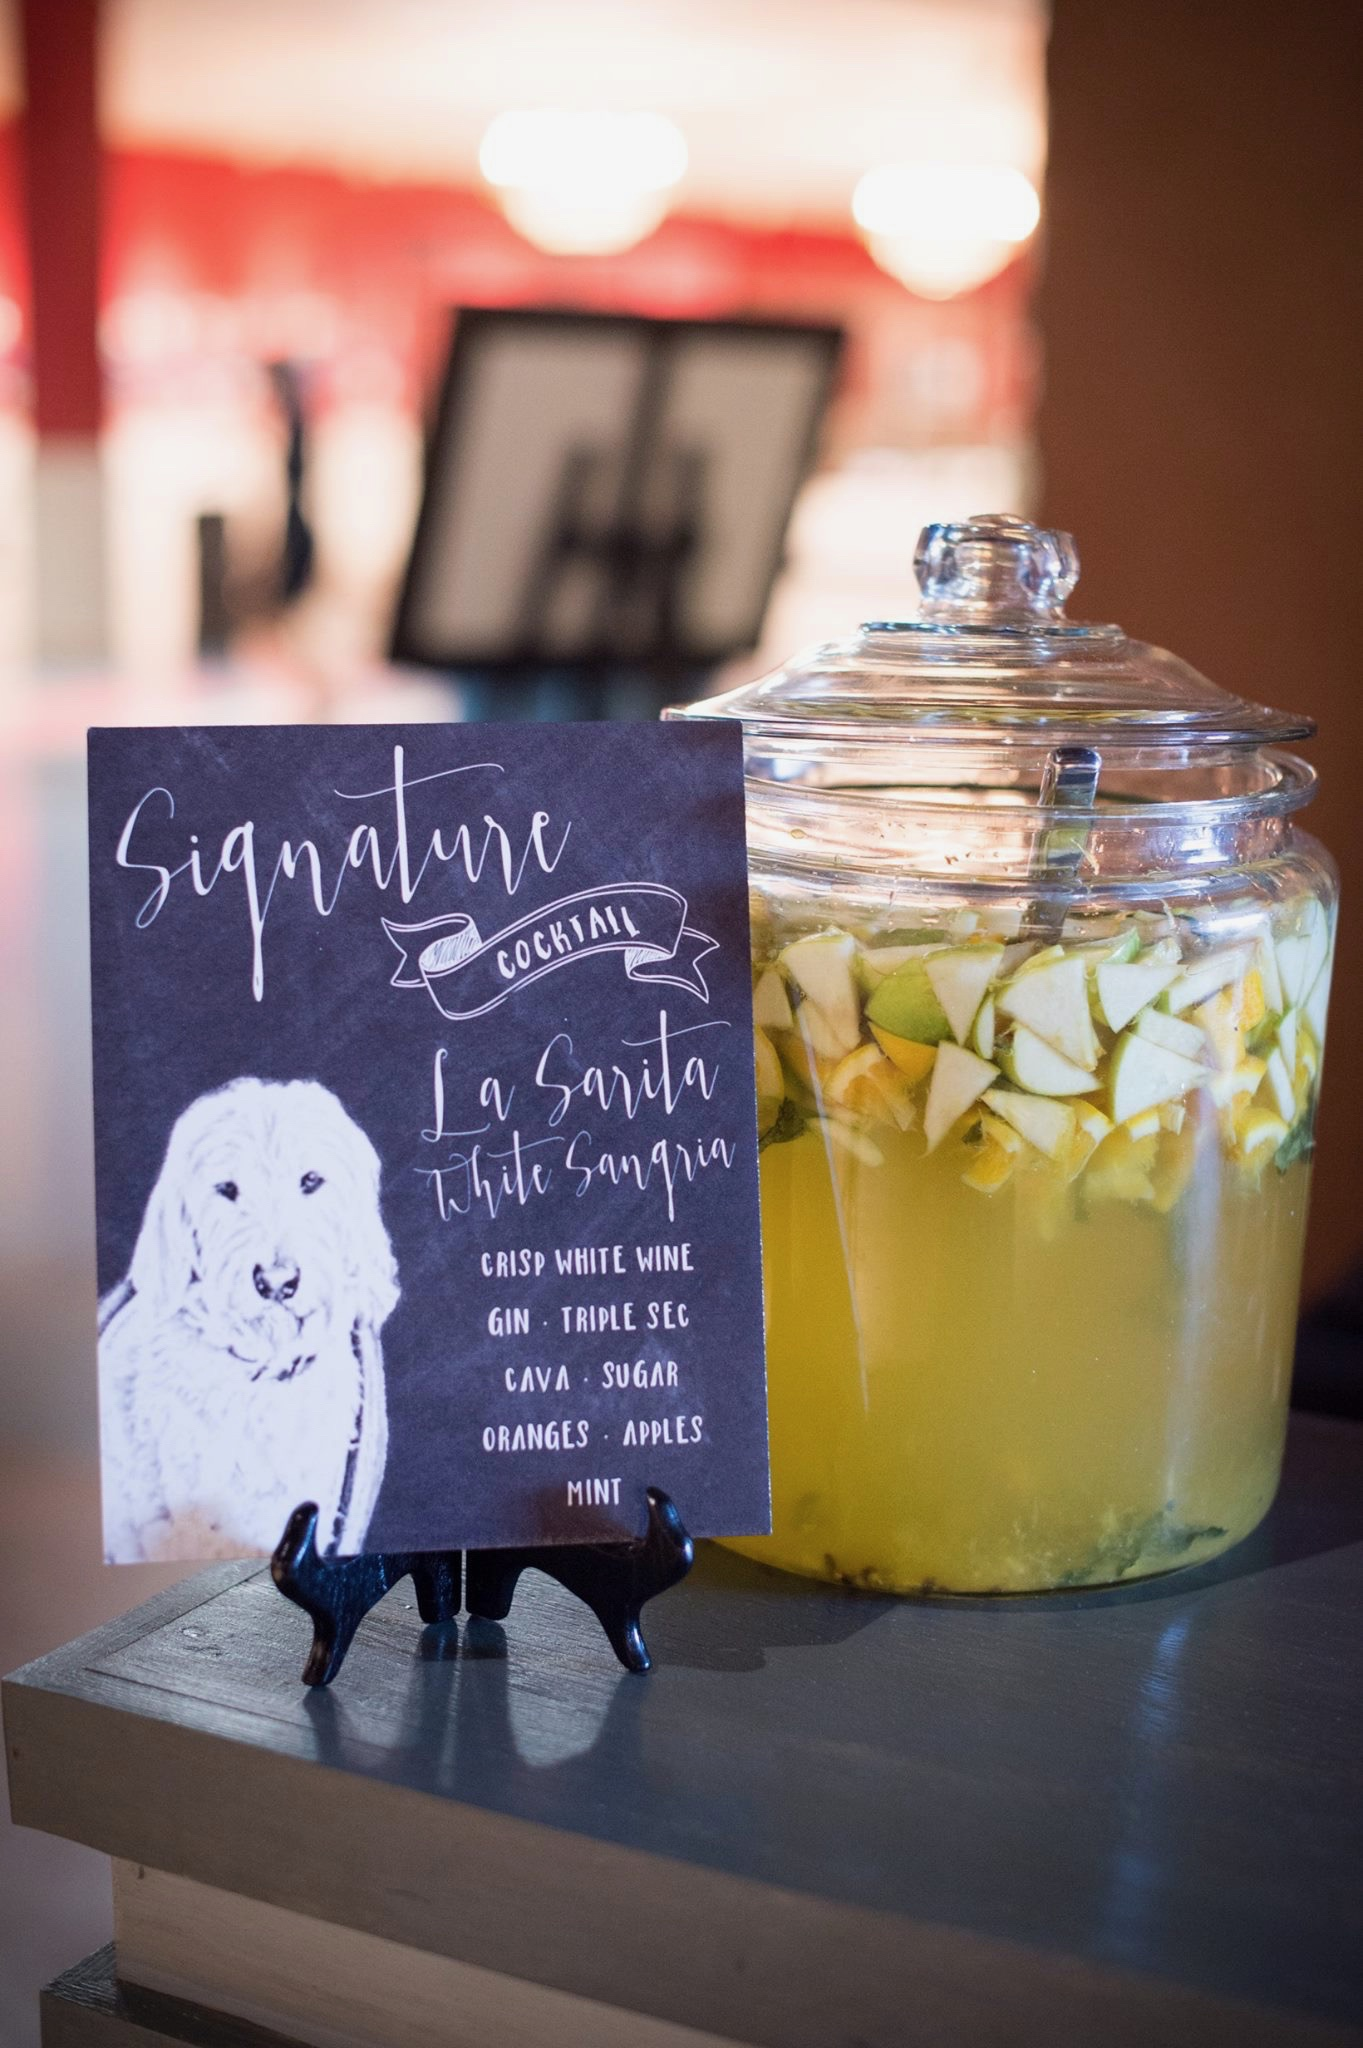 Naming a signuture cocktail after your furry friend is a fun way to include man's best friend www.avenueievents.com.jpg